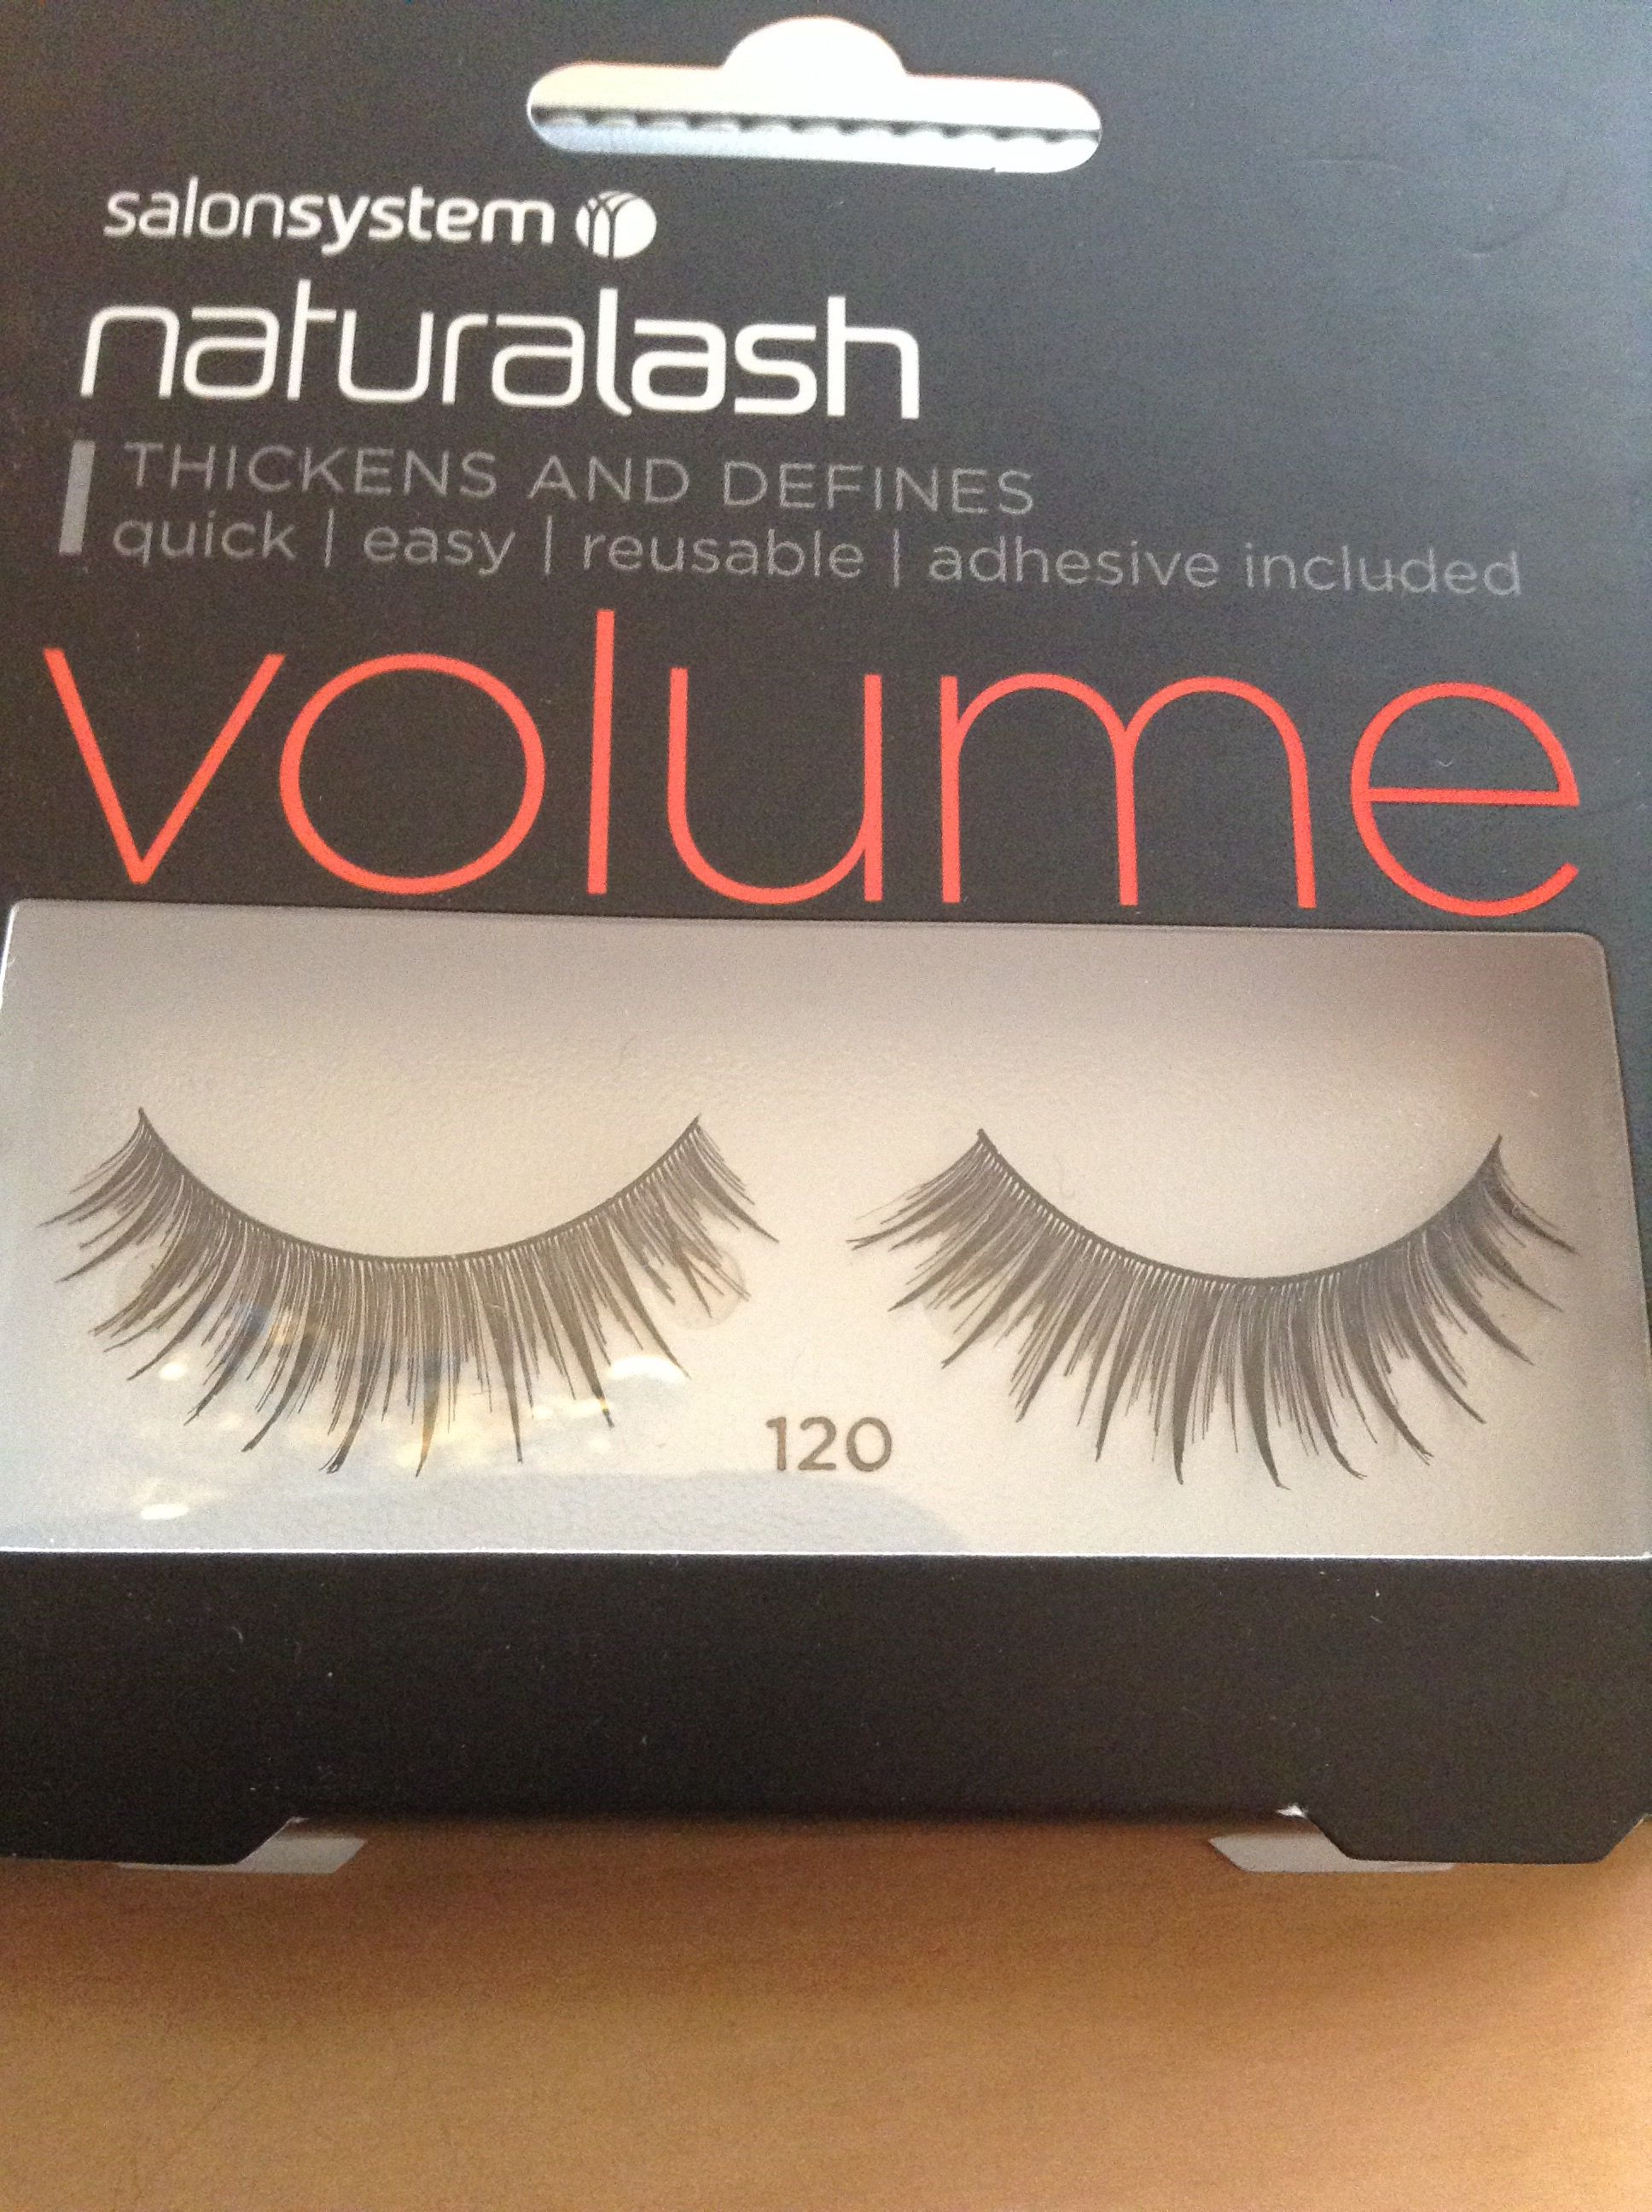 feee6cc3a9f Discover our range of strip lashes natural - lengthens & defines volume -  thickens & defines intense extra volume texture - individual lash effect